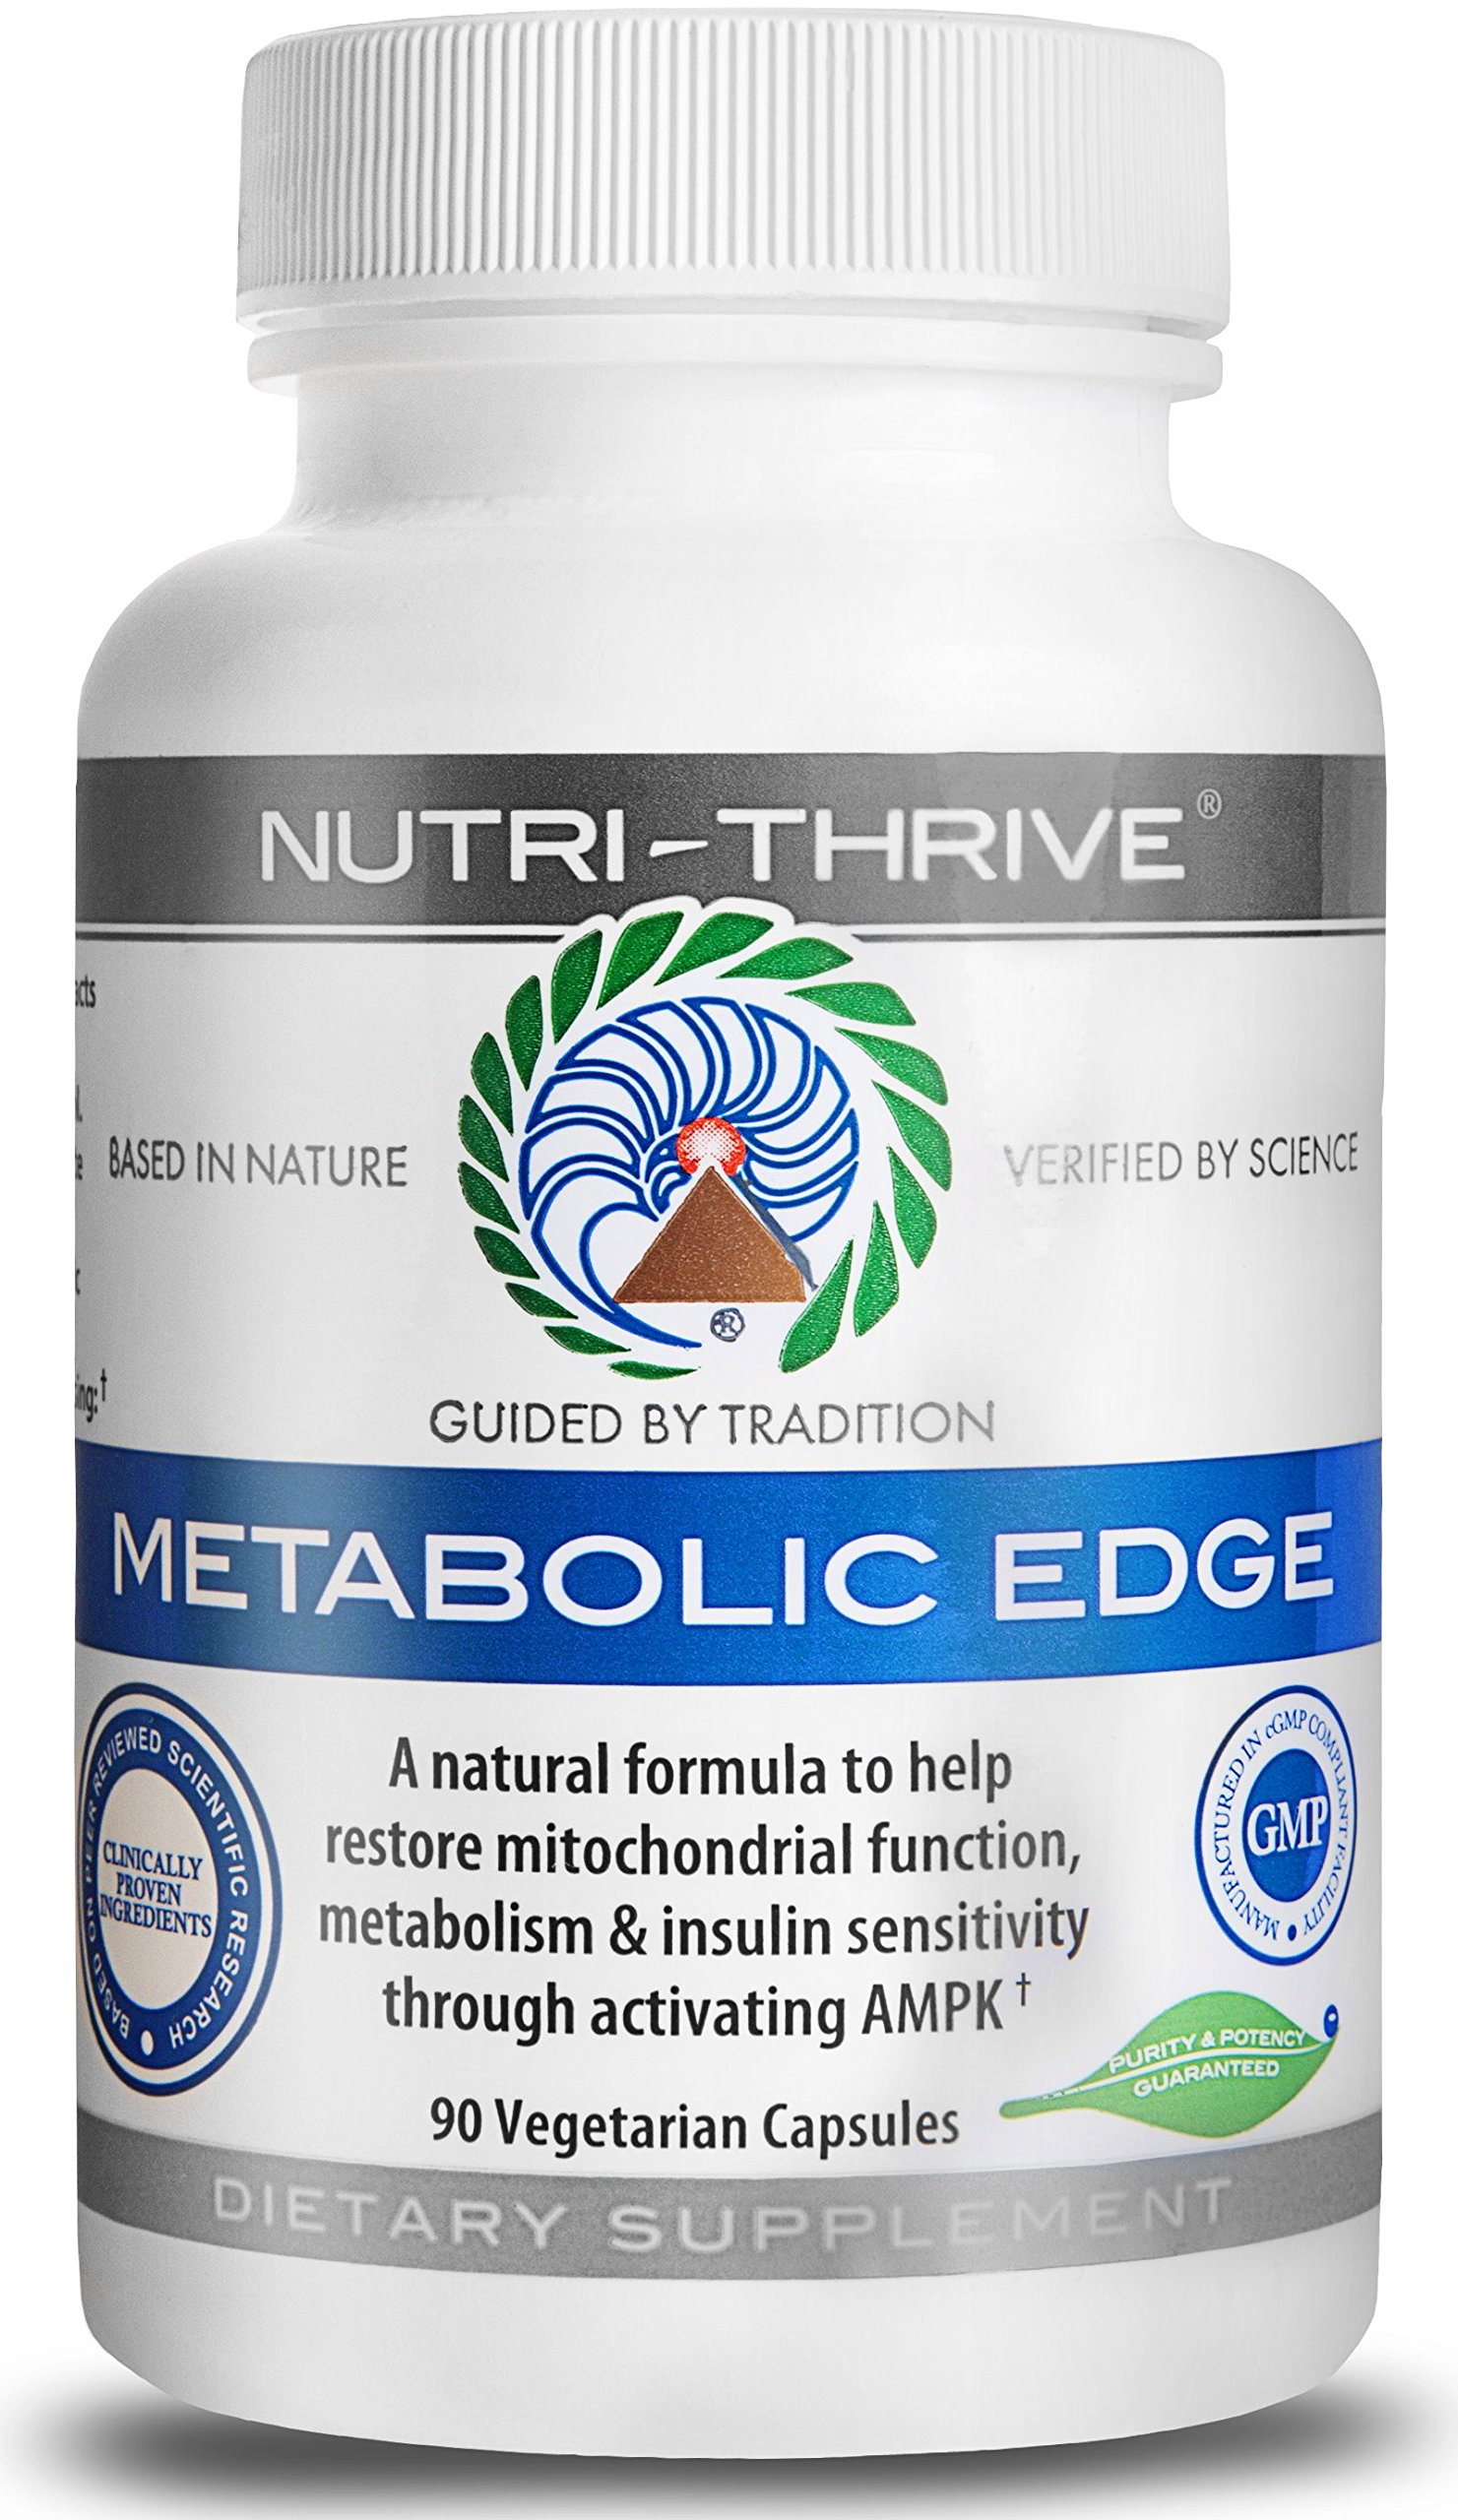 Metabolic Edge - A Potent Blend Of Clinically Proven Extracts: Berberine, High-Dose Fucoxanthin & Heat-Treated Jiaogulan (ActivAMP®)